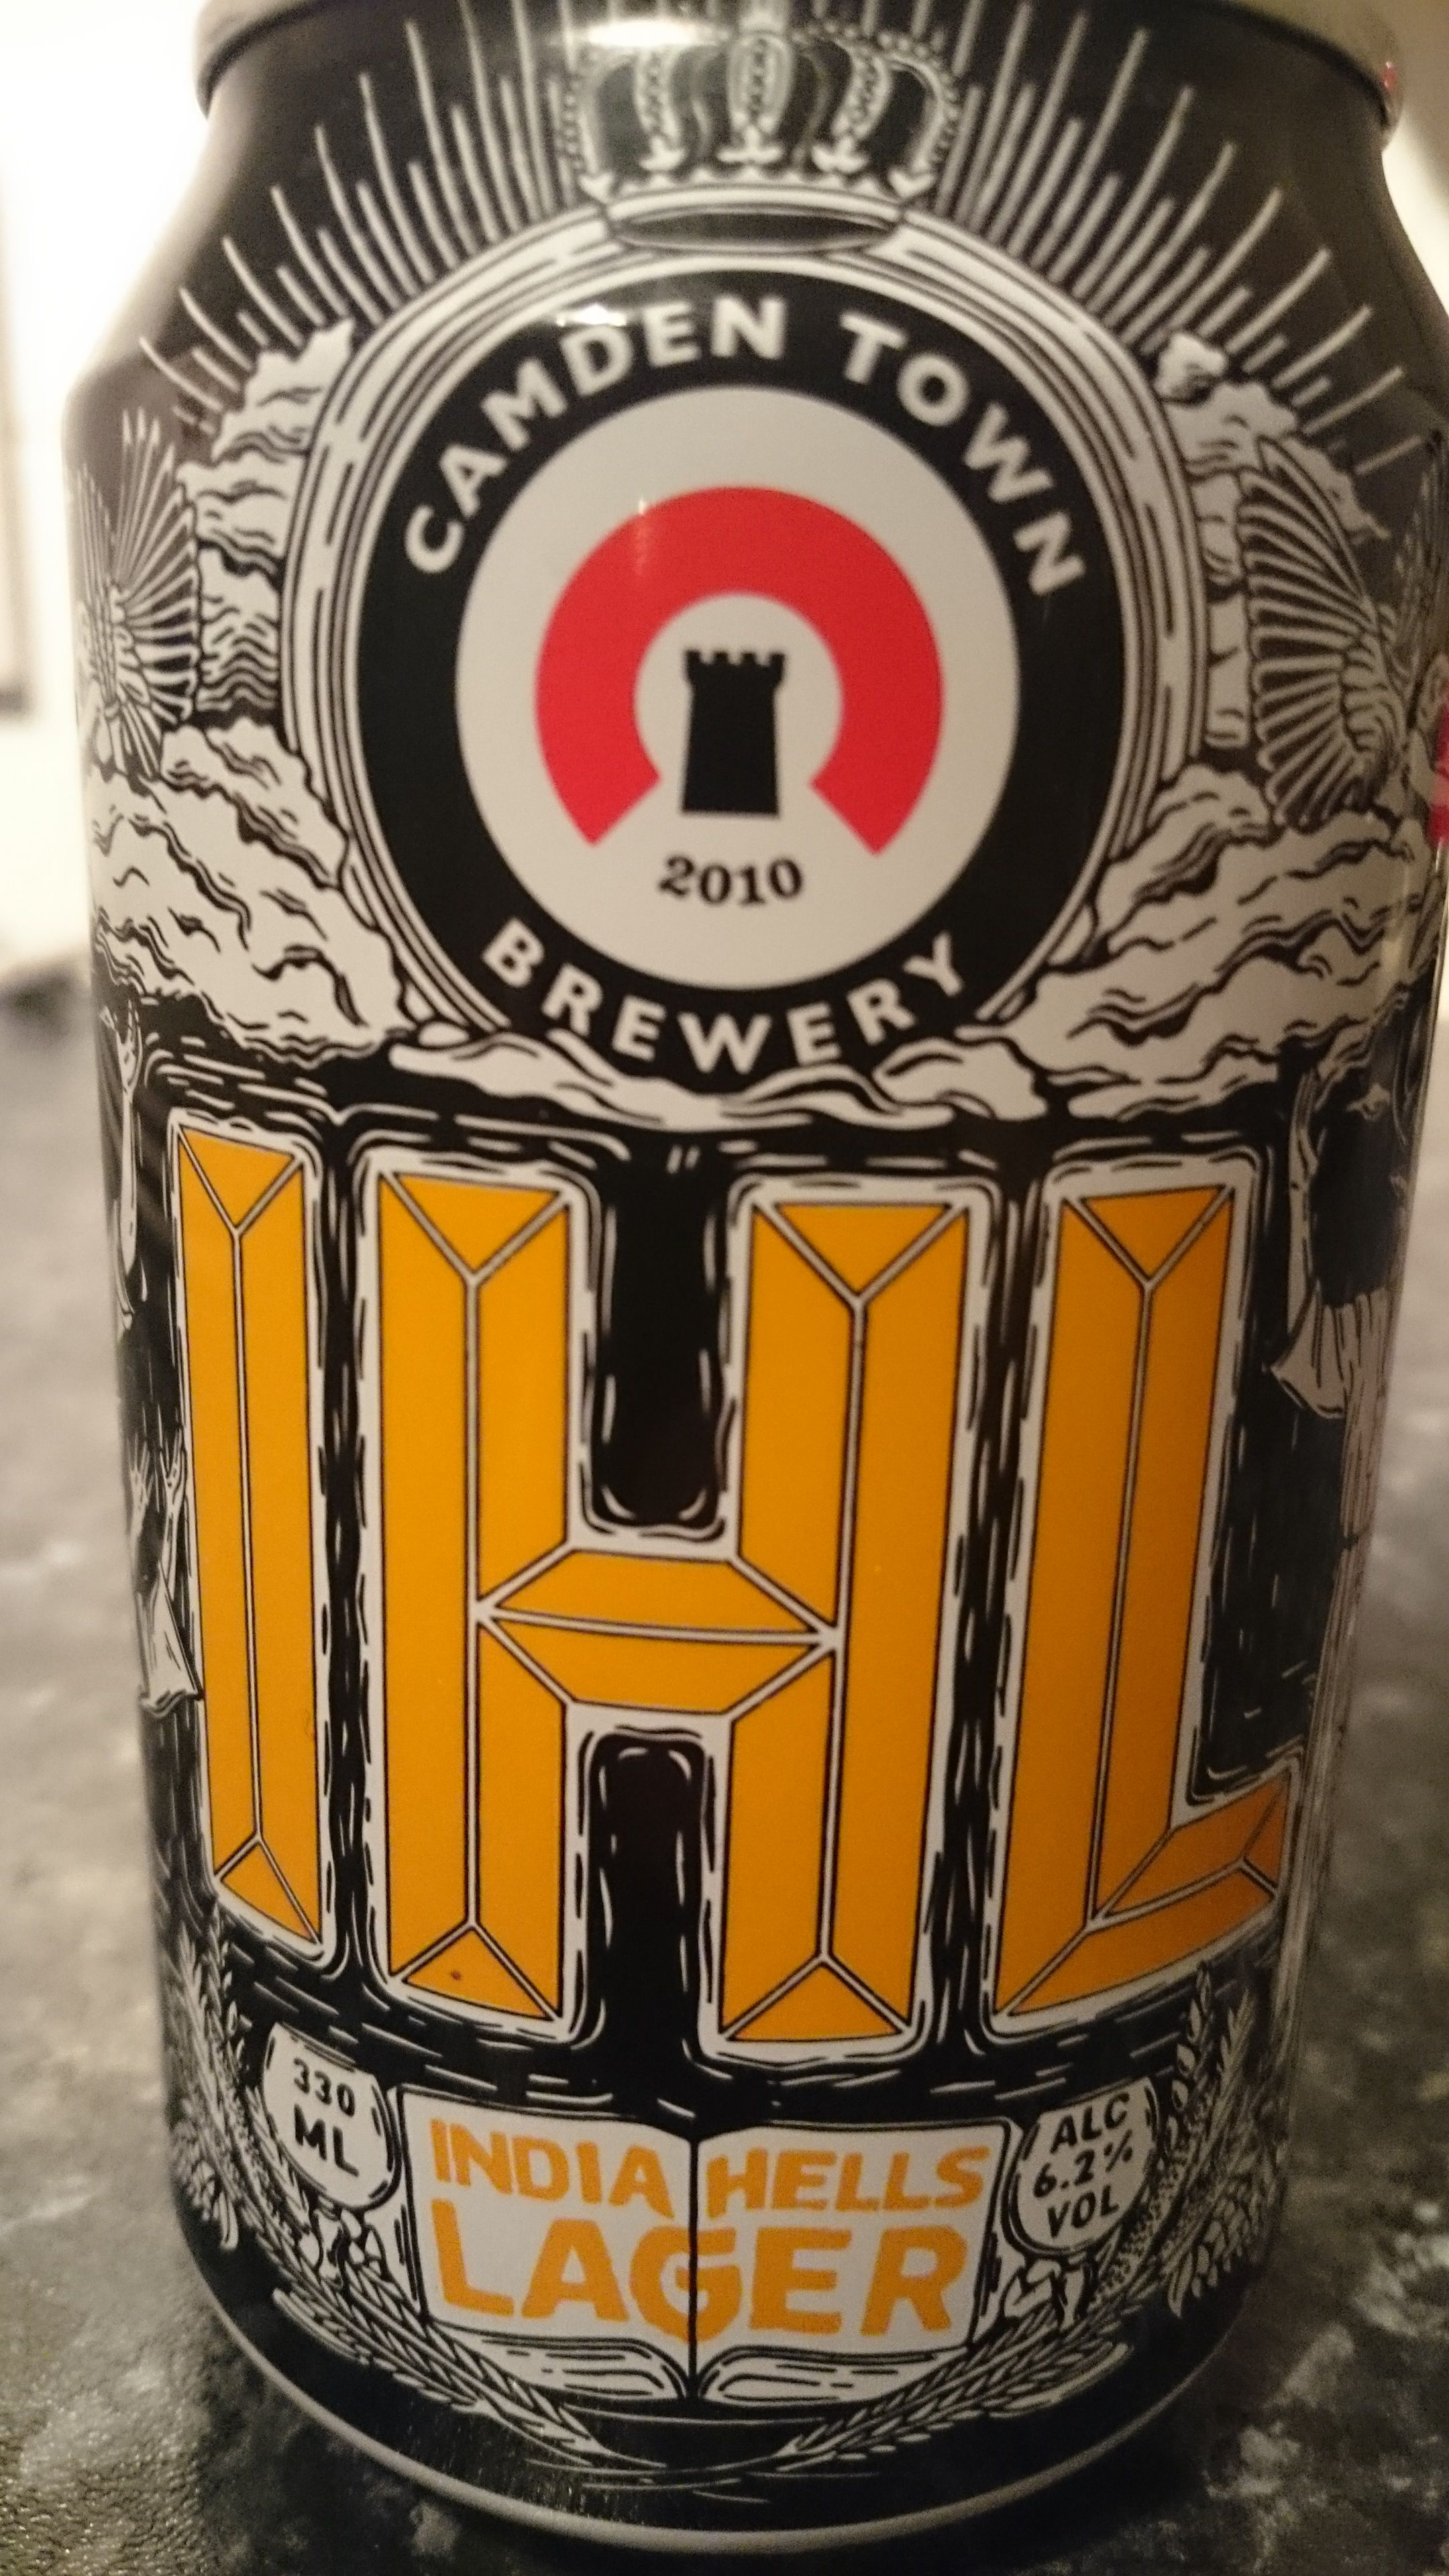 A Review of Camden Town Brewery IHL Brewery, Camden town